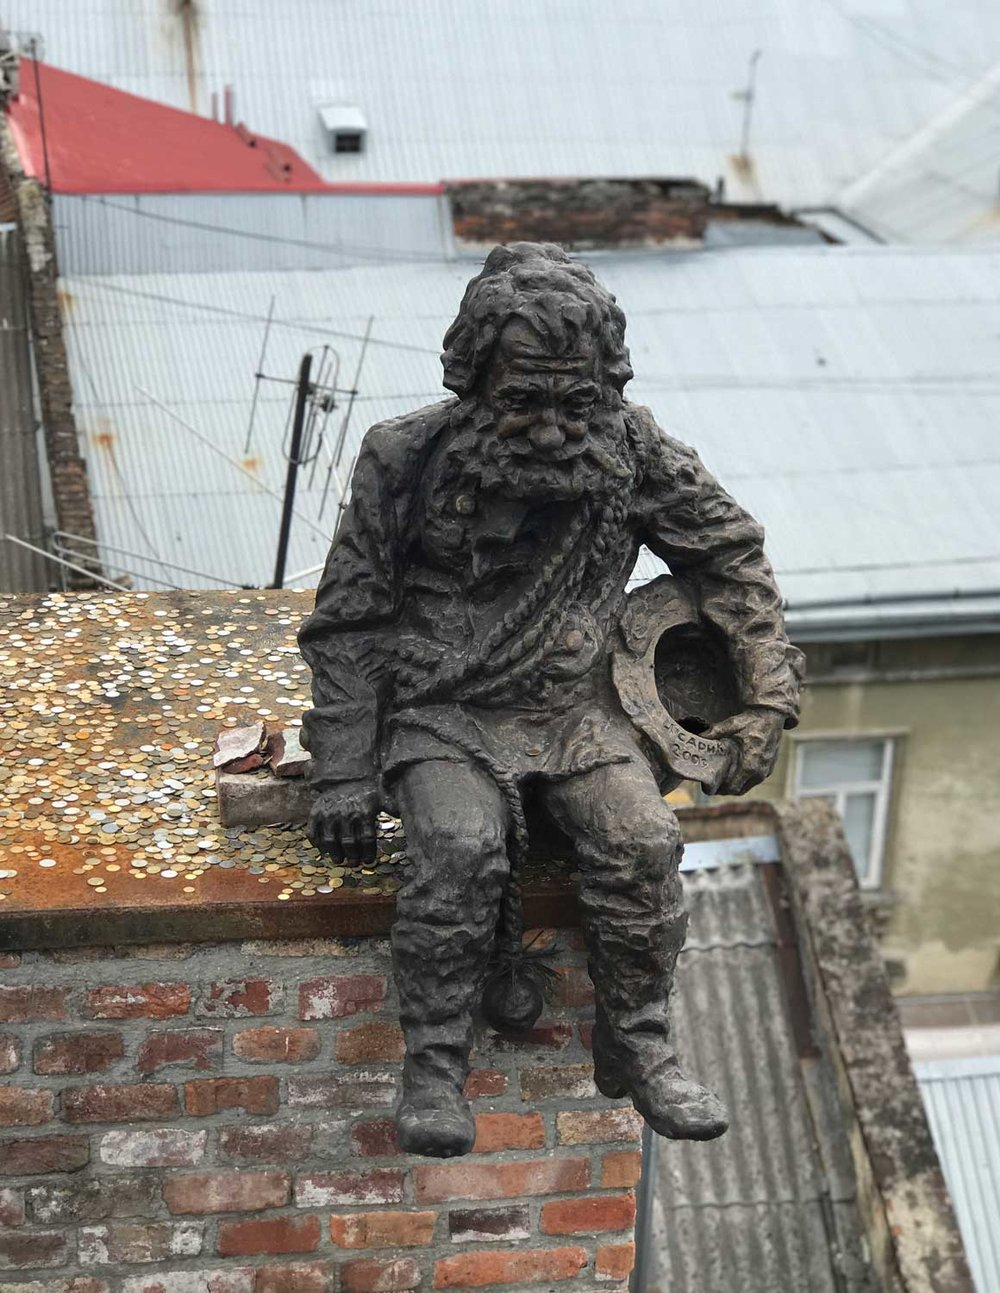 The Chimney Sweep monument.